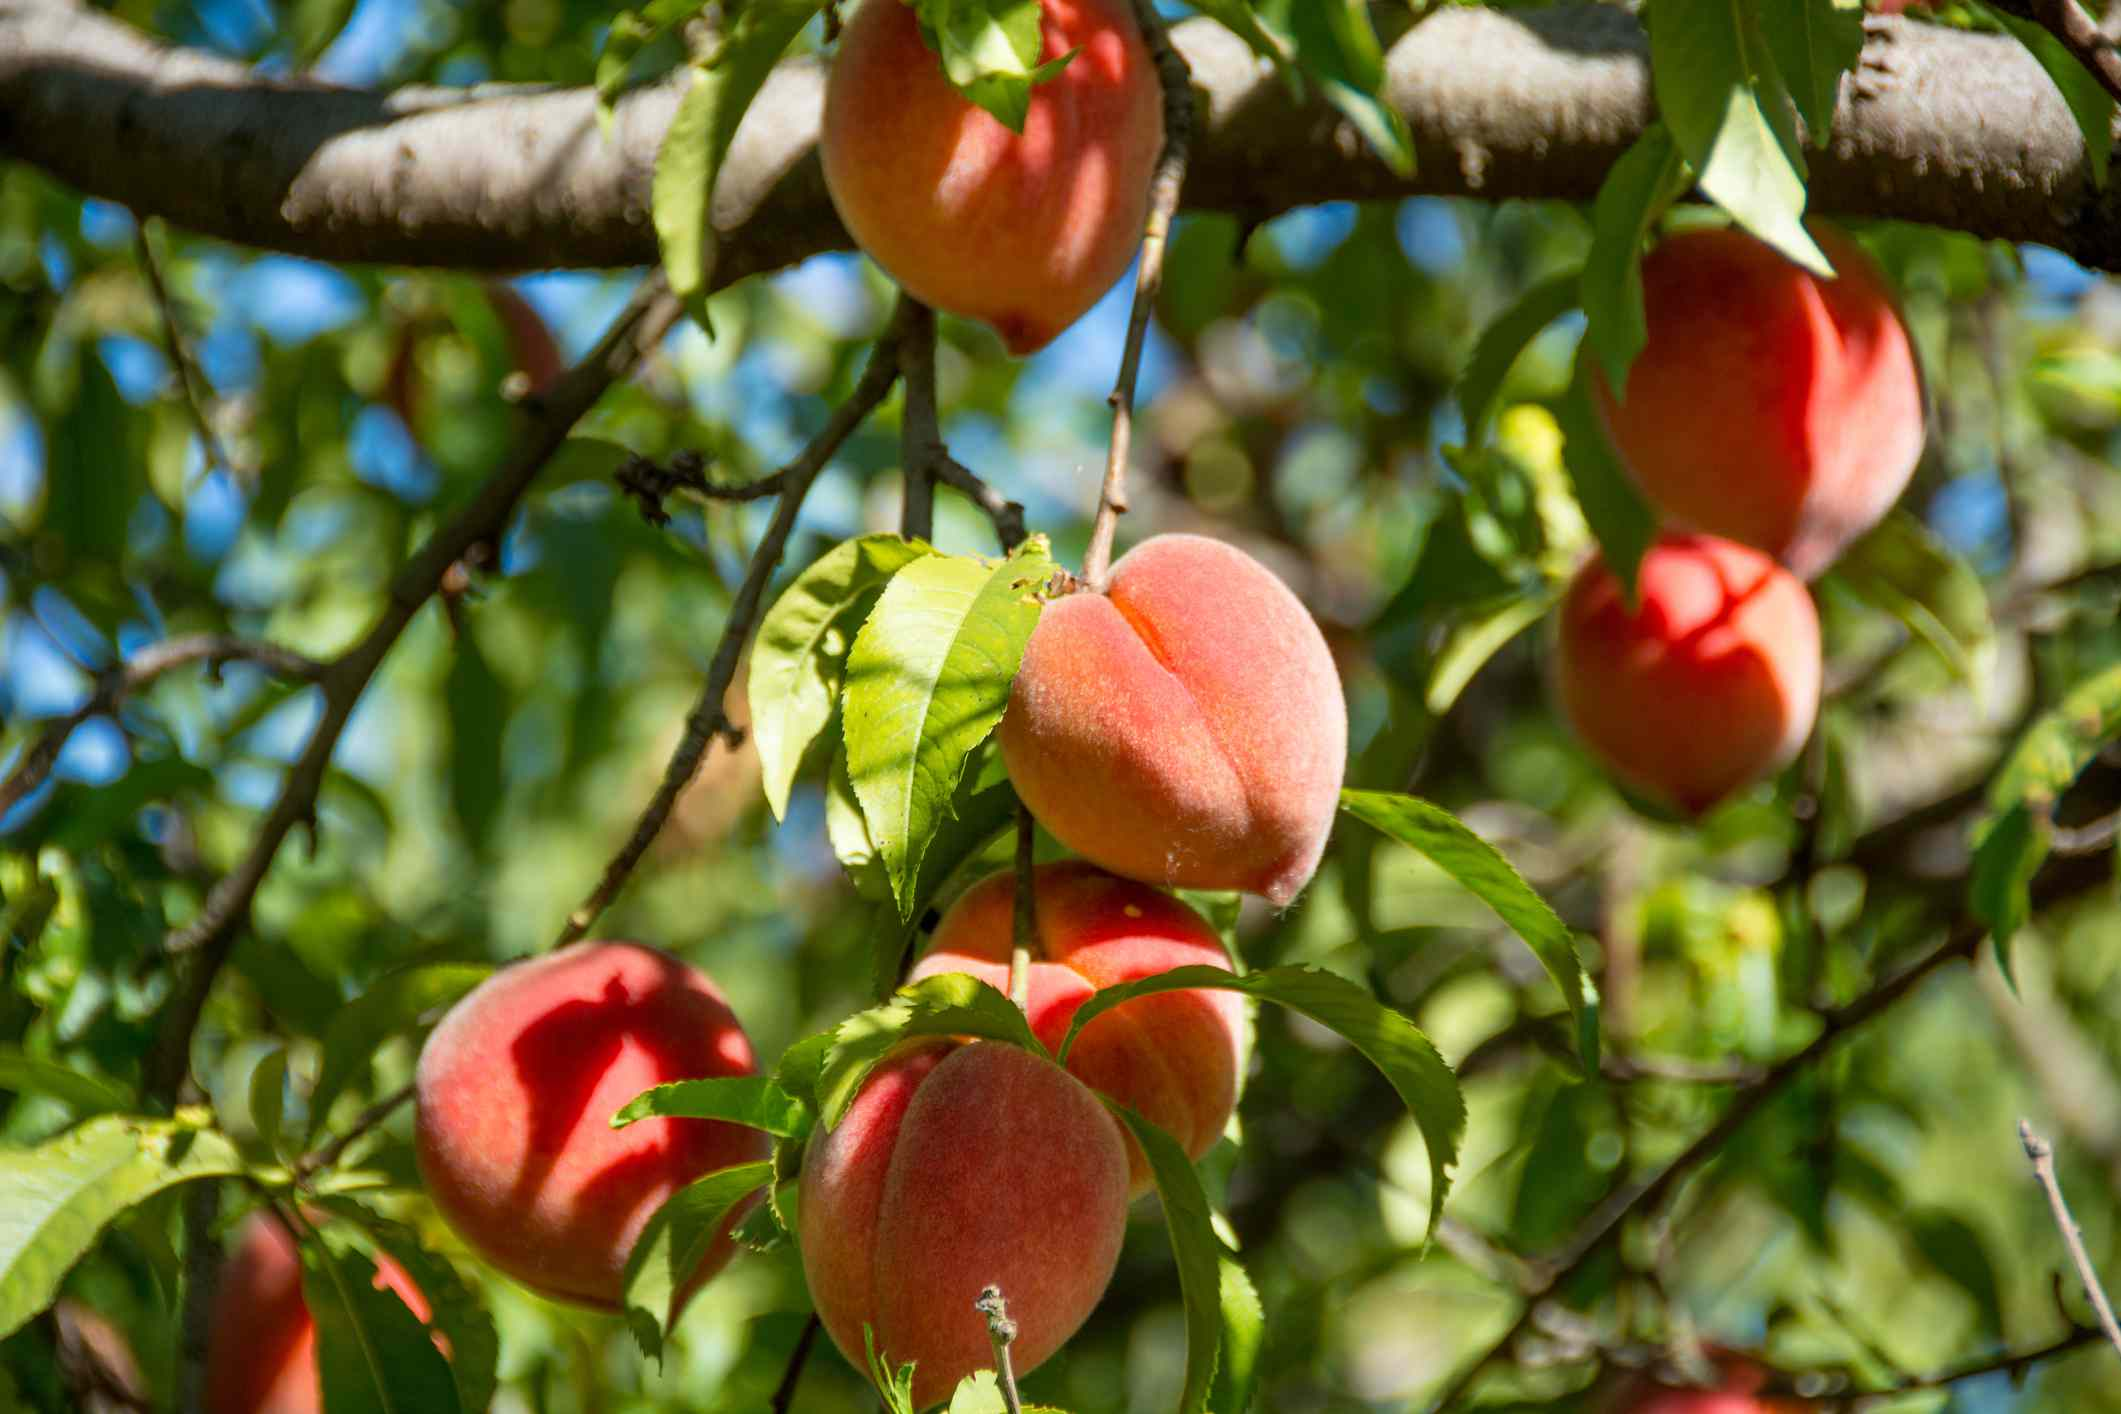 Peaches hanging of a tree in bright sunny light.